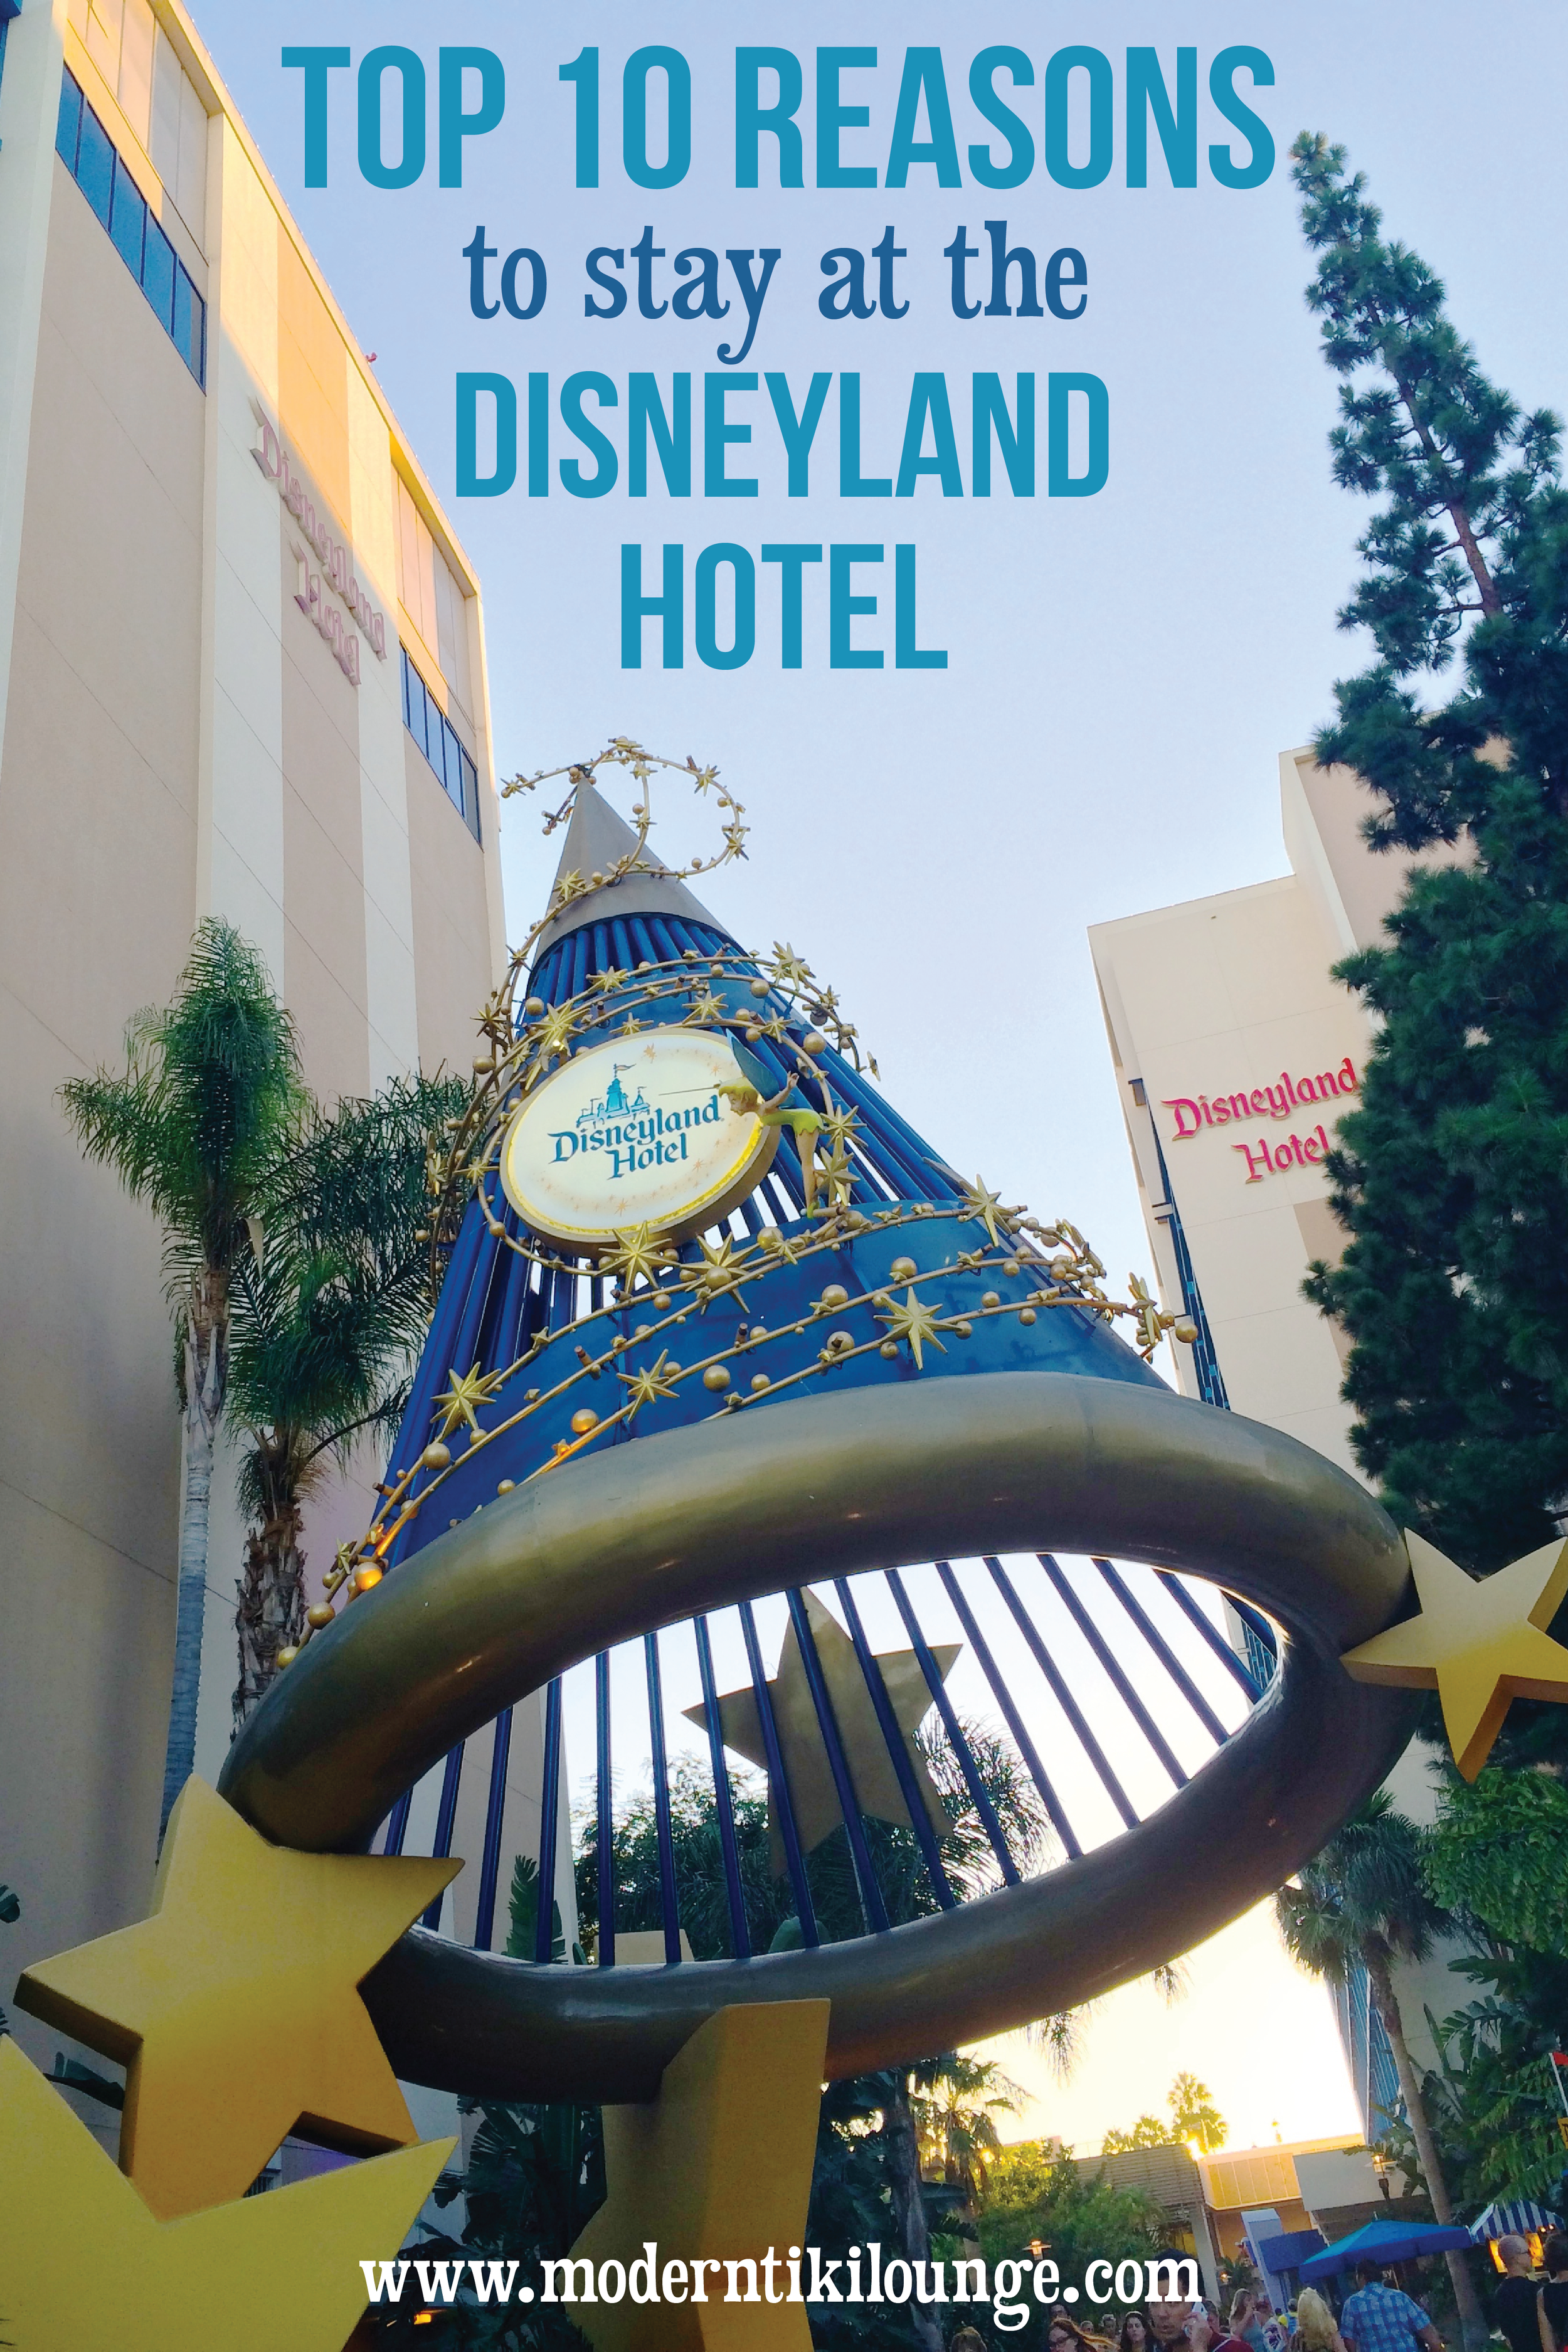 reasons-to-stay-at-disneyland-hotel.jpg